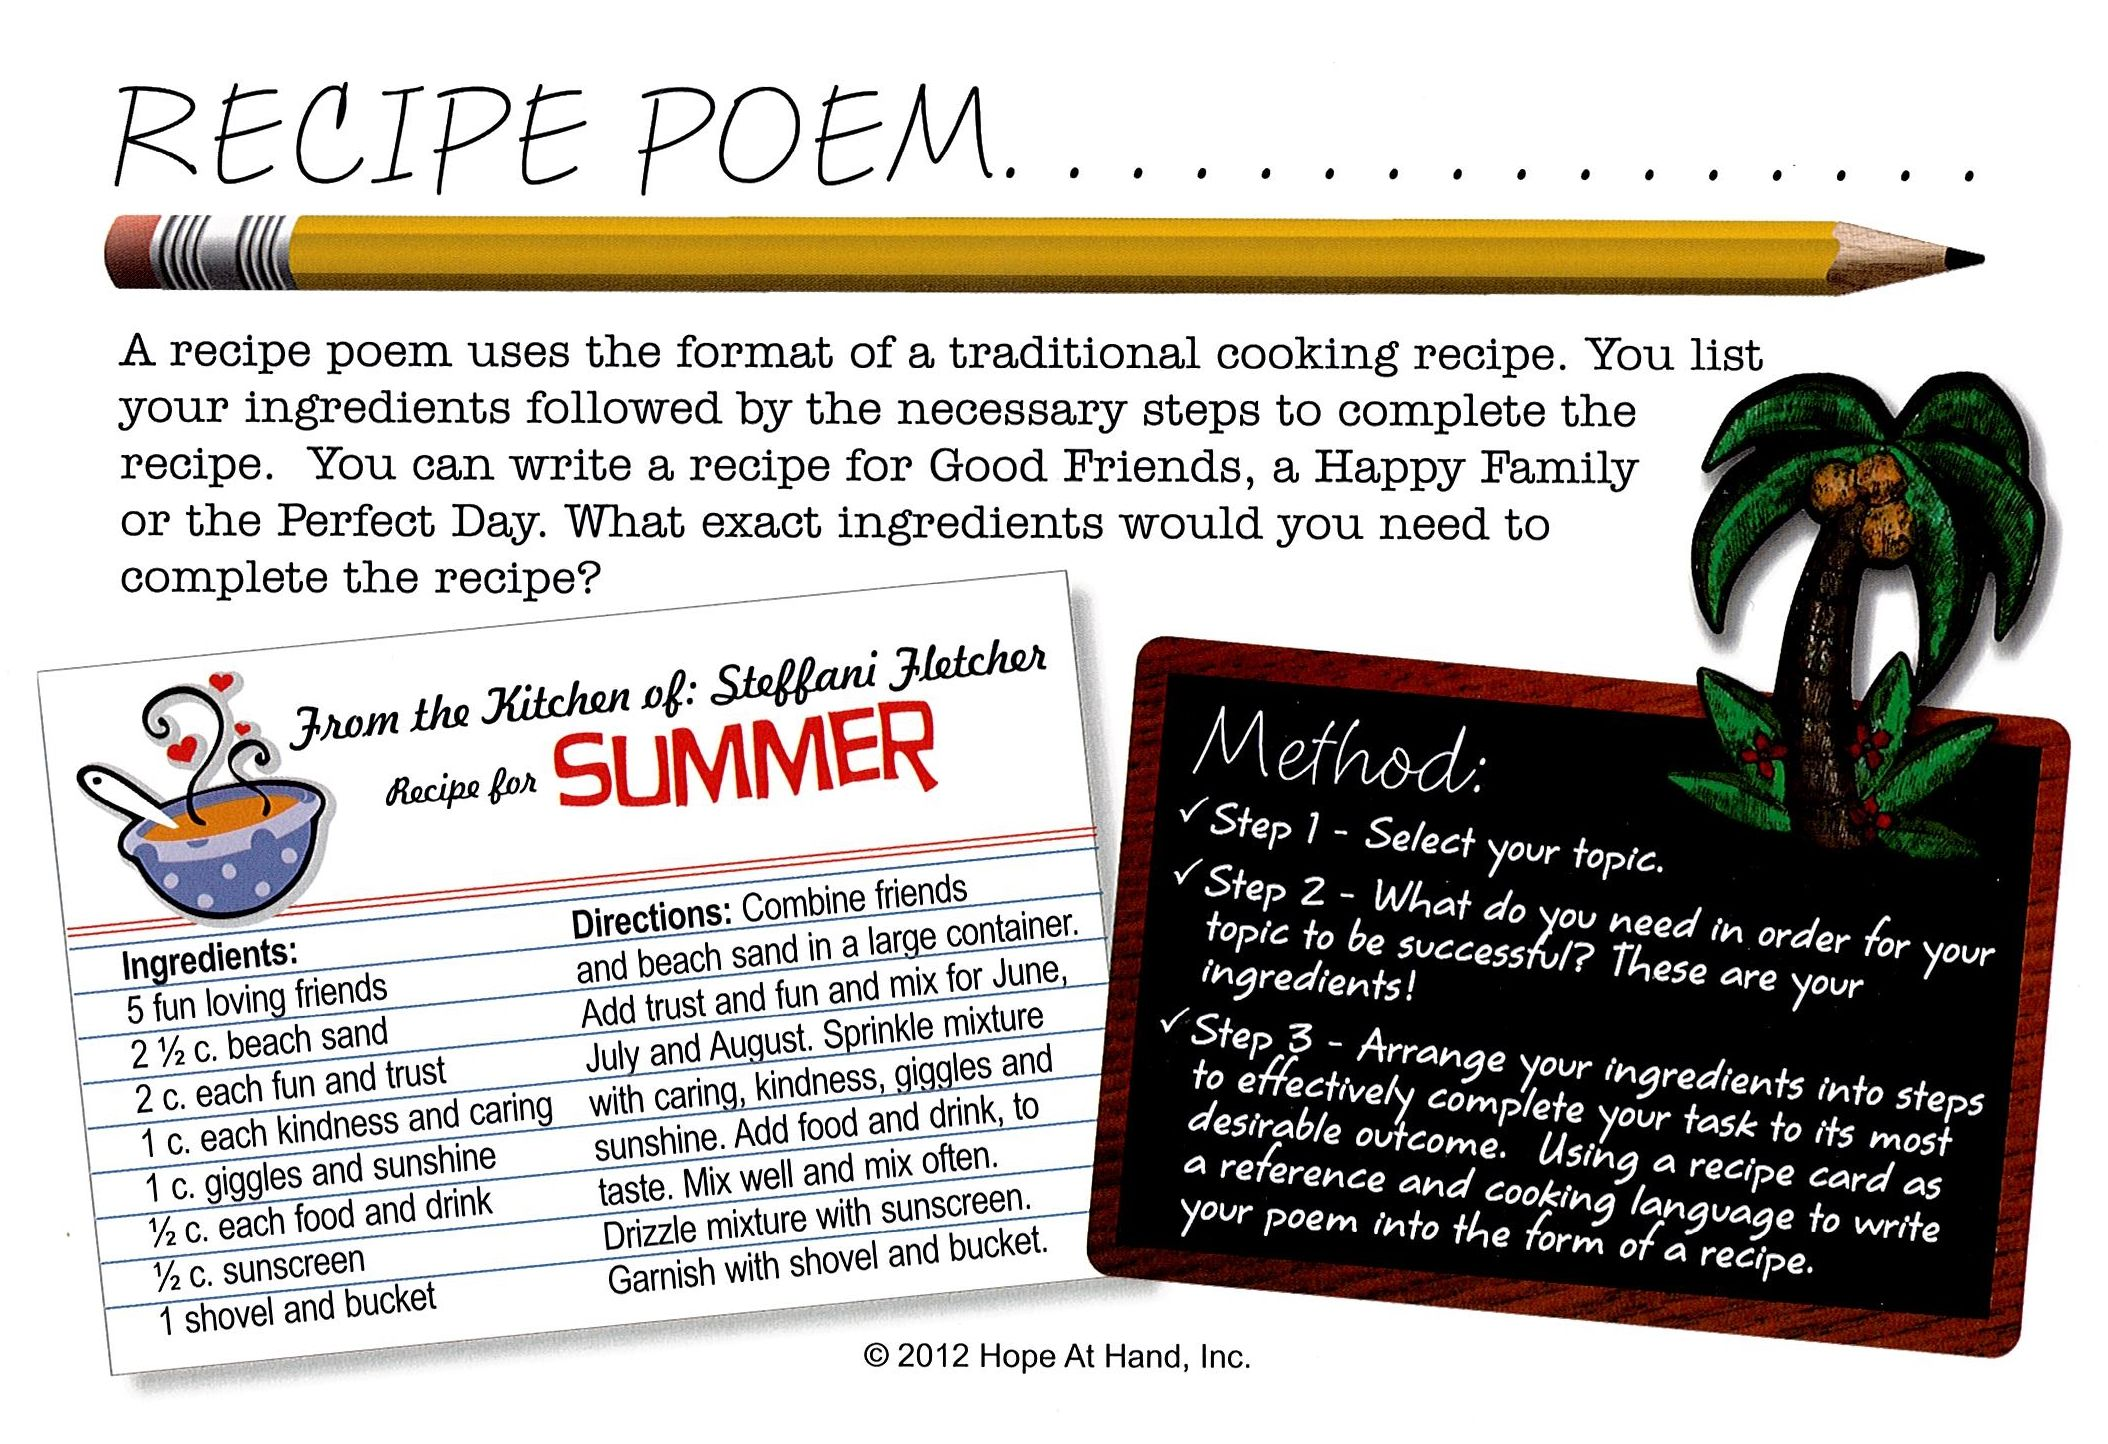 A Recipe Poem Is A Poem That Uses A Word And Gives The Ingredients And Directions It Takes To Make Or Achieve Writing Prompts For Kids Food Writing You Poem